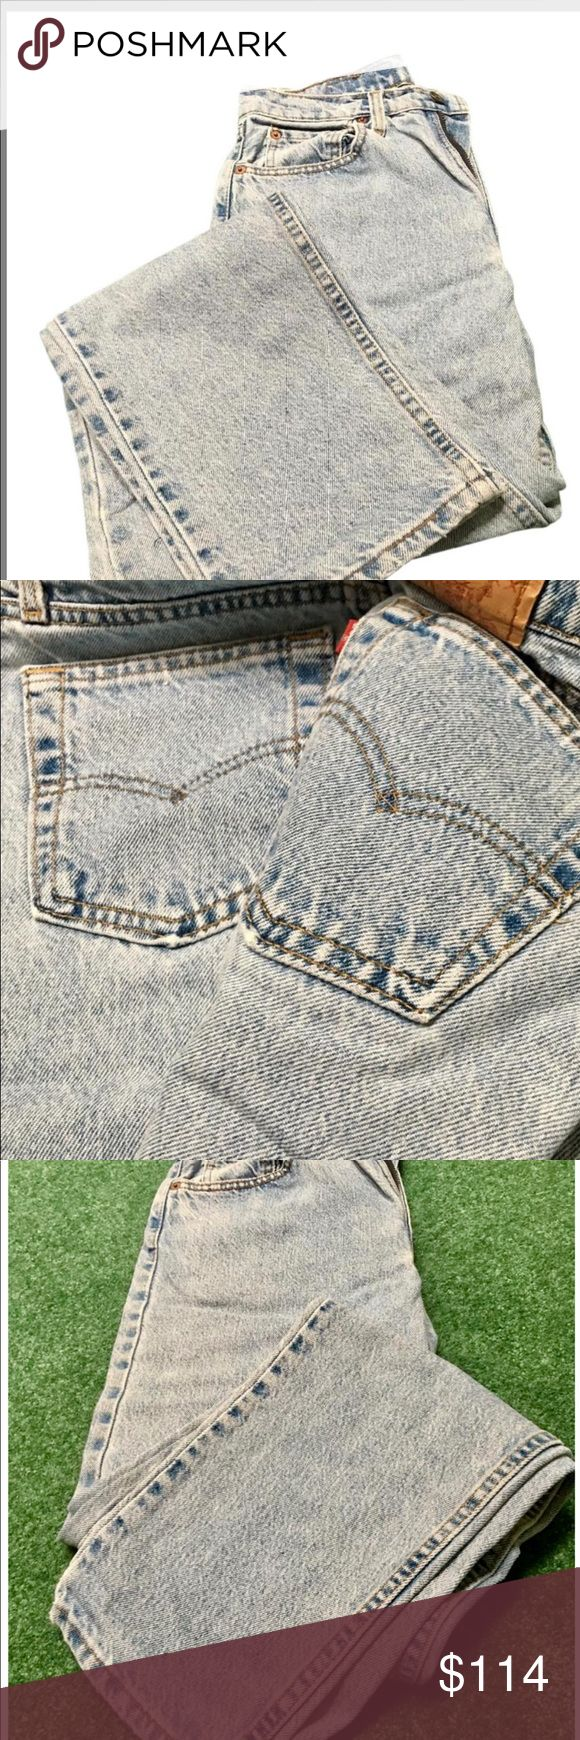 90's retro women's jeans, relaxed fit. Red label circa 1990's. High waisted. Relaxed fit. Narrow bottom. Vintage Look. Juniors size 7M. If you loved the fit of an early 90's Levi's cut, these are what you are looking for!!! I loved wearing these with my western boots. Narrow cuff the bottom and wear them belted for today's hot 90's Throw Back Trend look. Faded to perfection. Normal wear. Gently used. Levi's Jeans Boot Cut